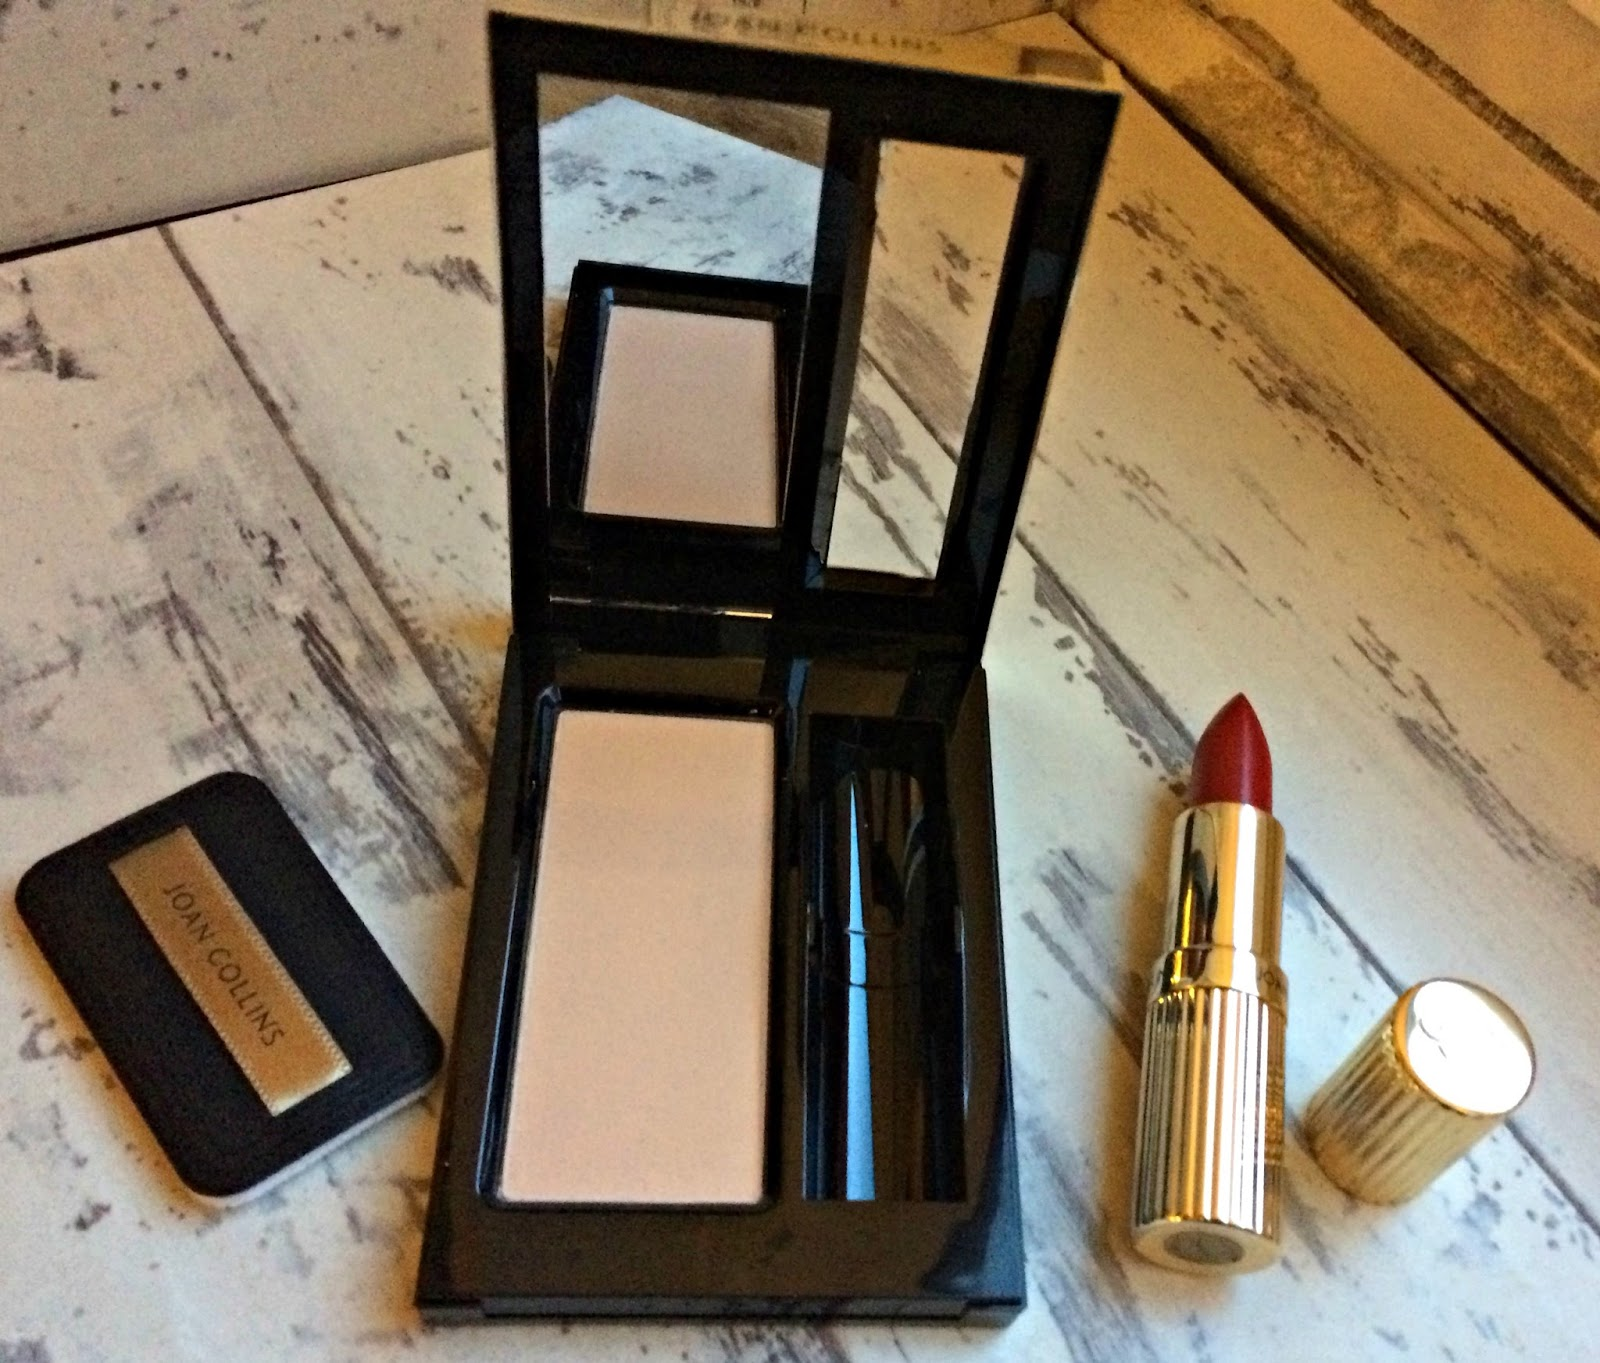 Joan Collins Paparazzi Compact with Divine Lipstick in shade Helene